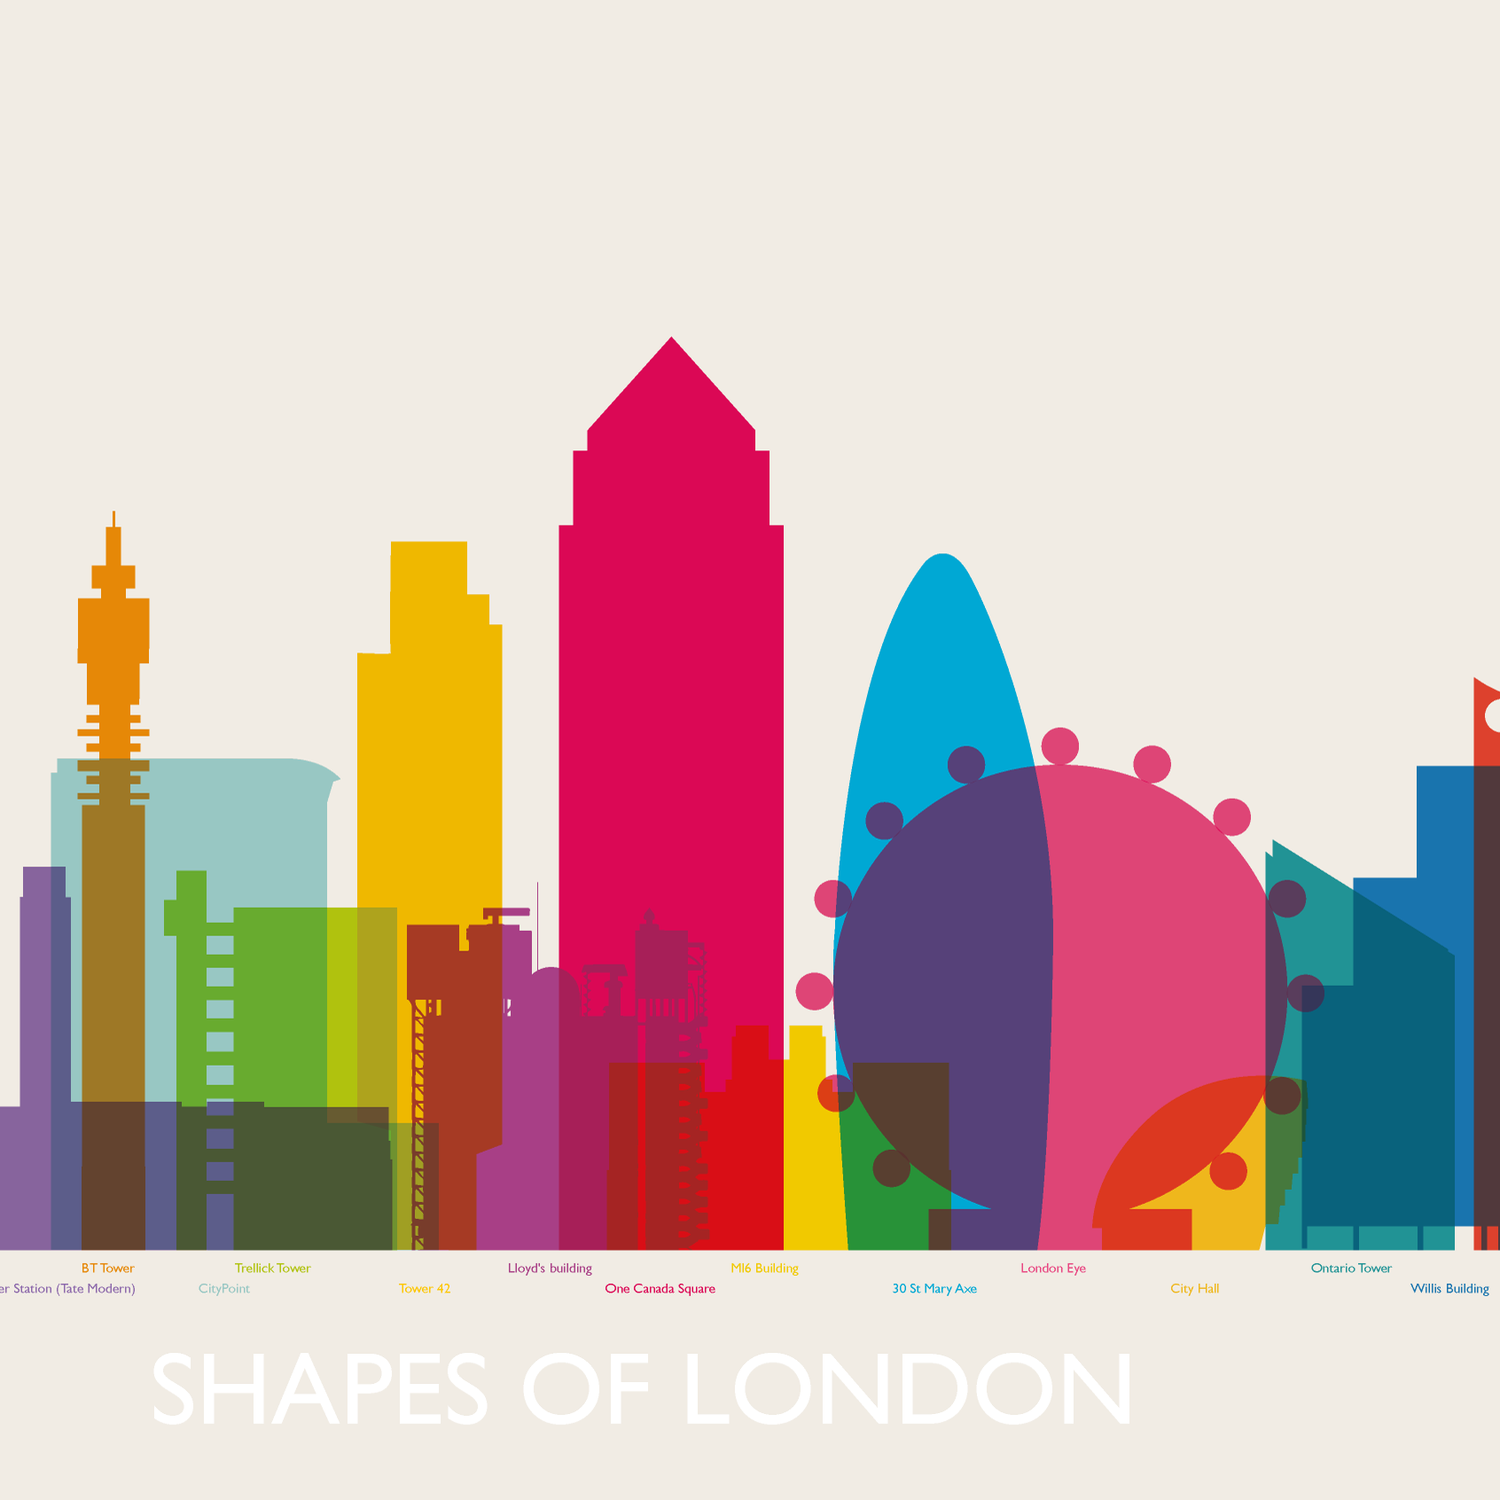 Image of Shapes of London chronological